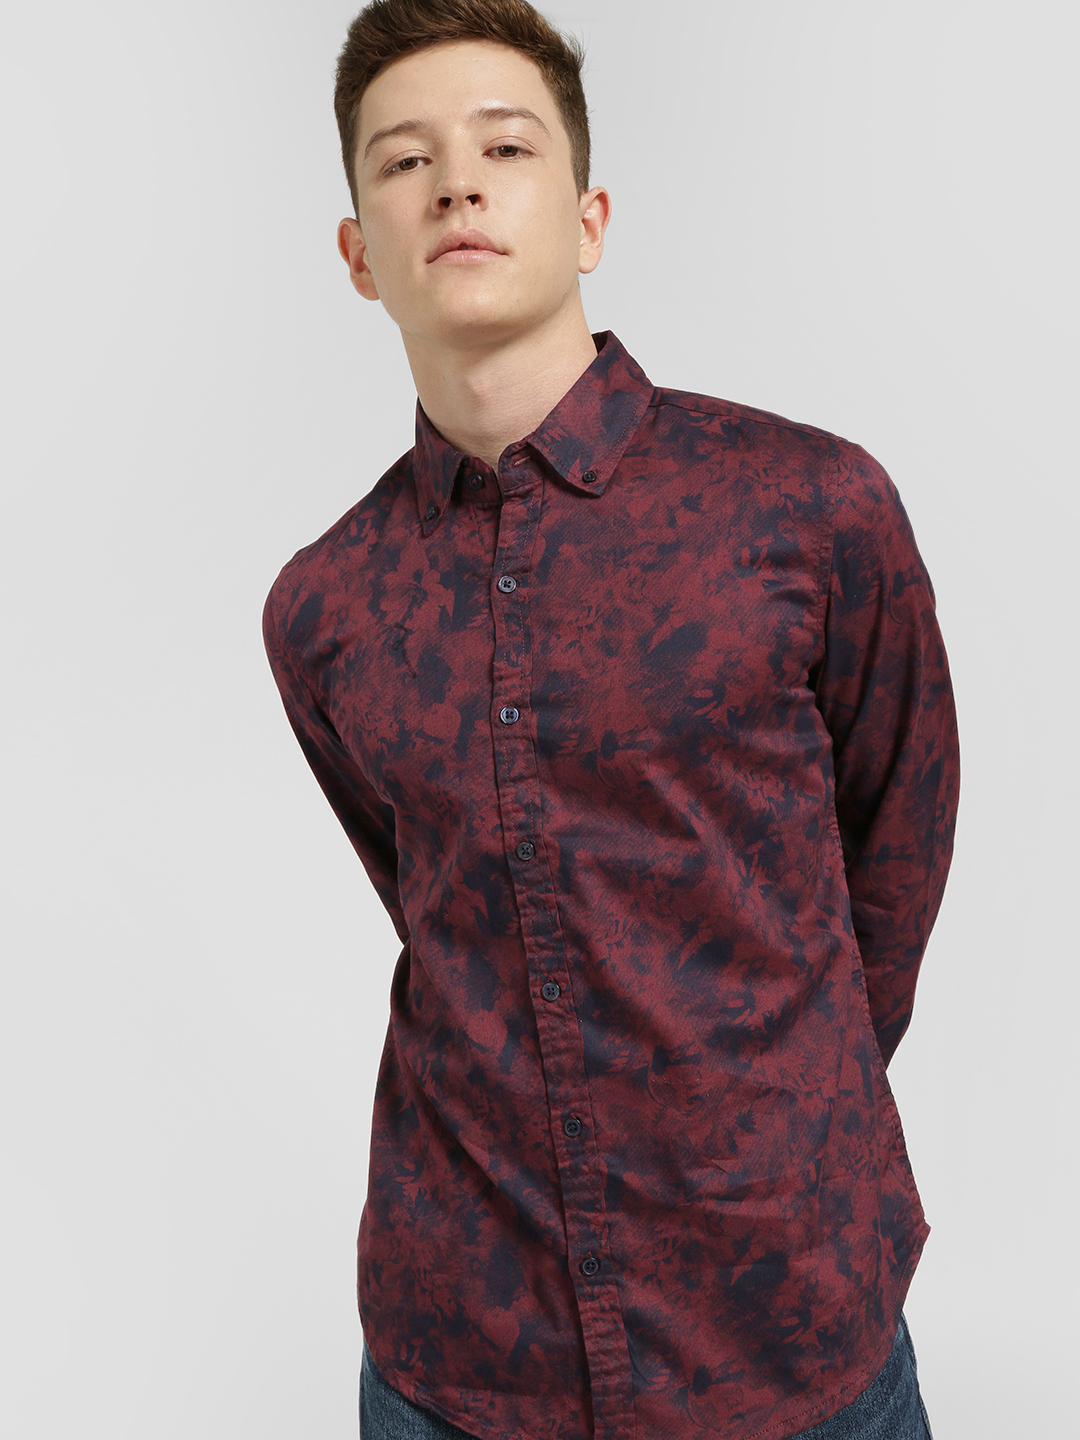 Lion & Hess Red Faded Floral Print Casual Shirt 1